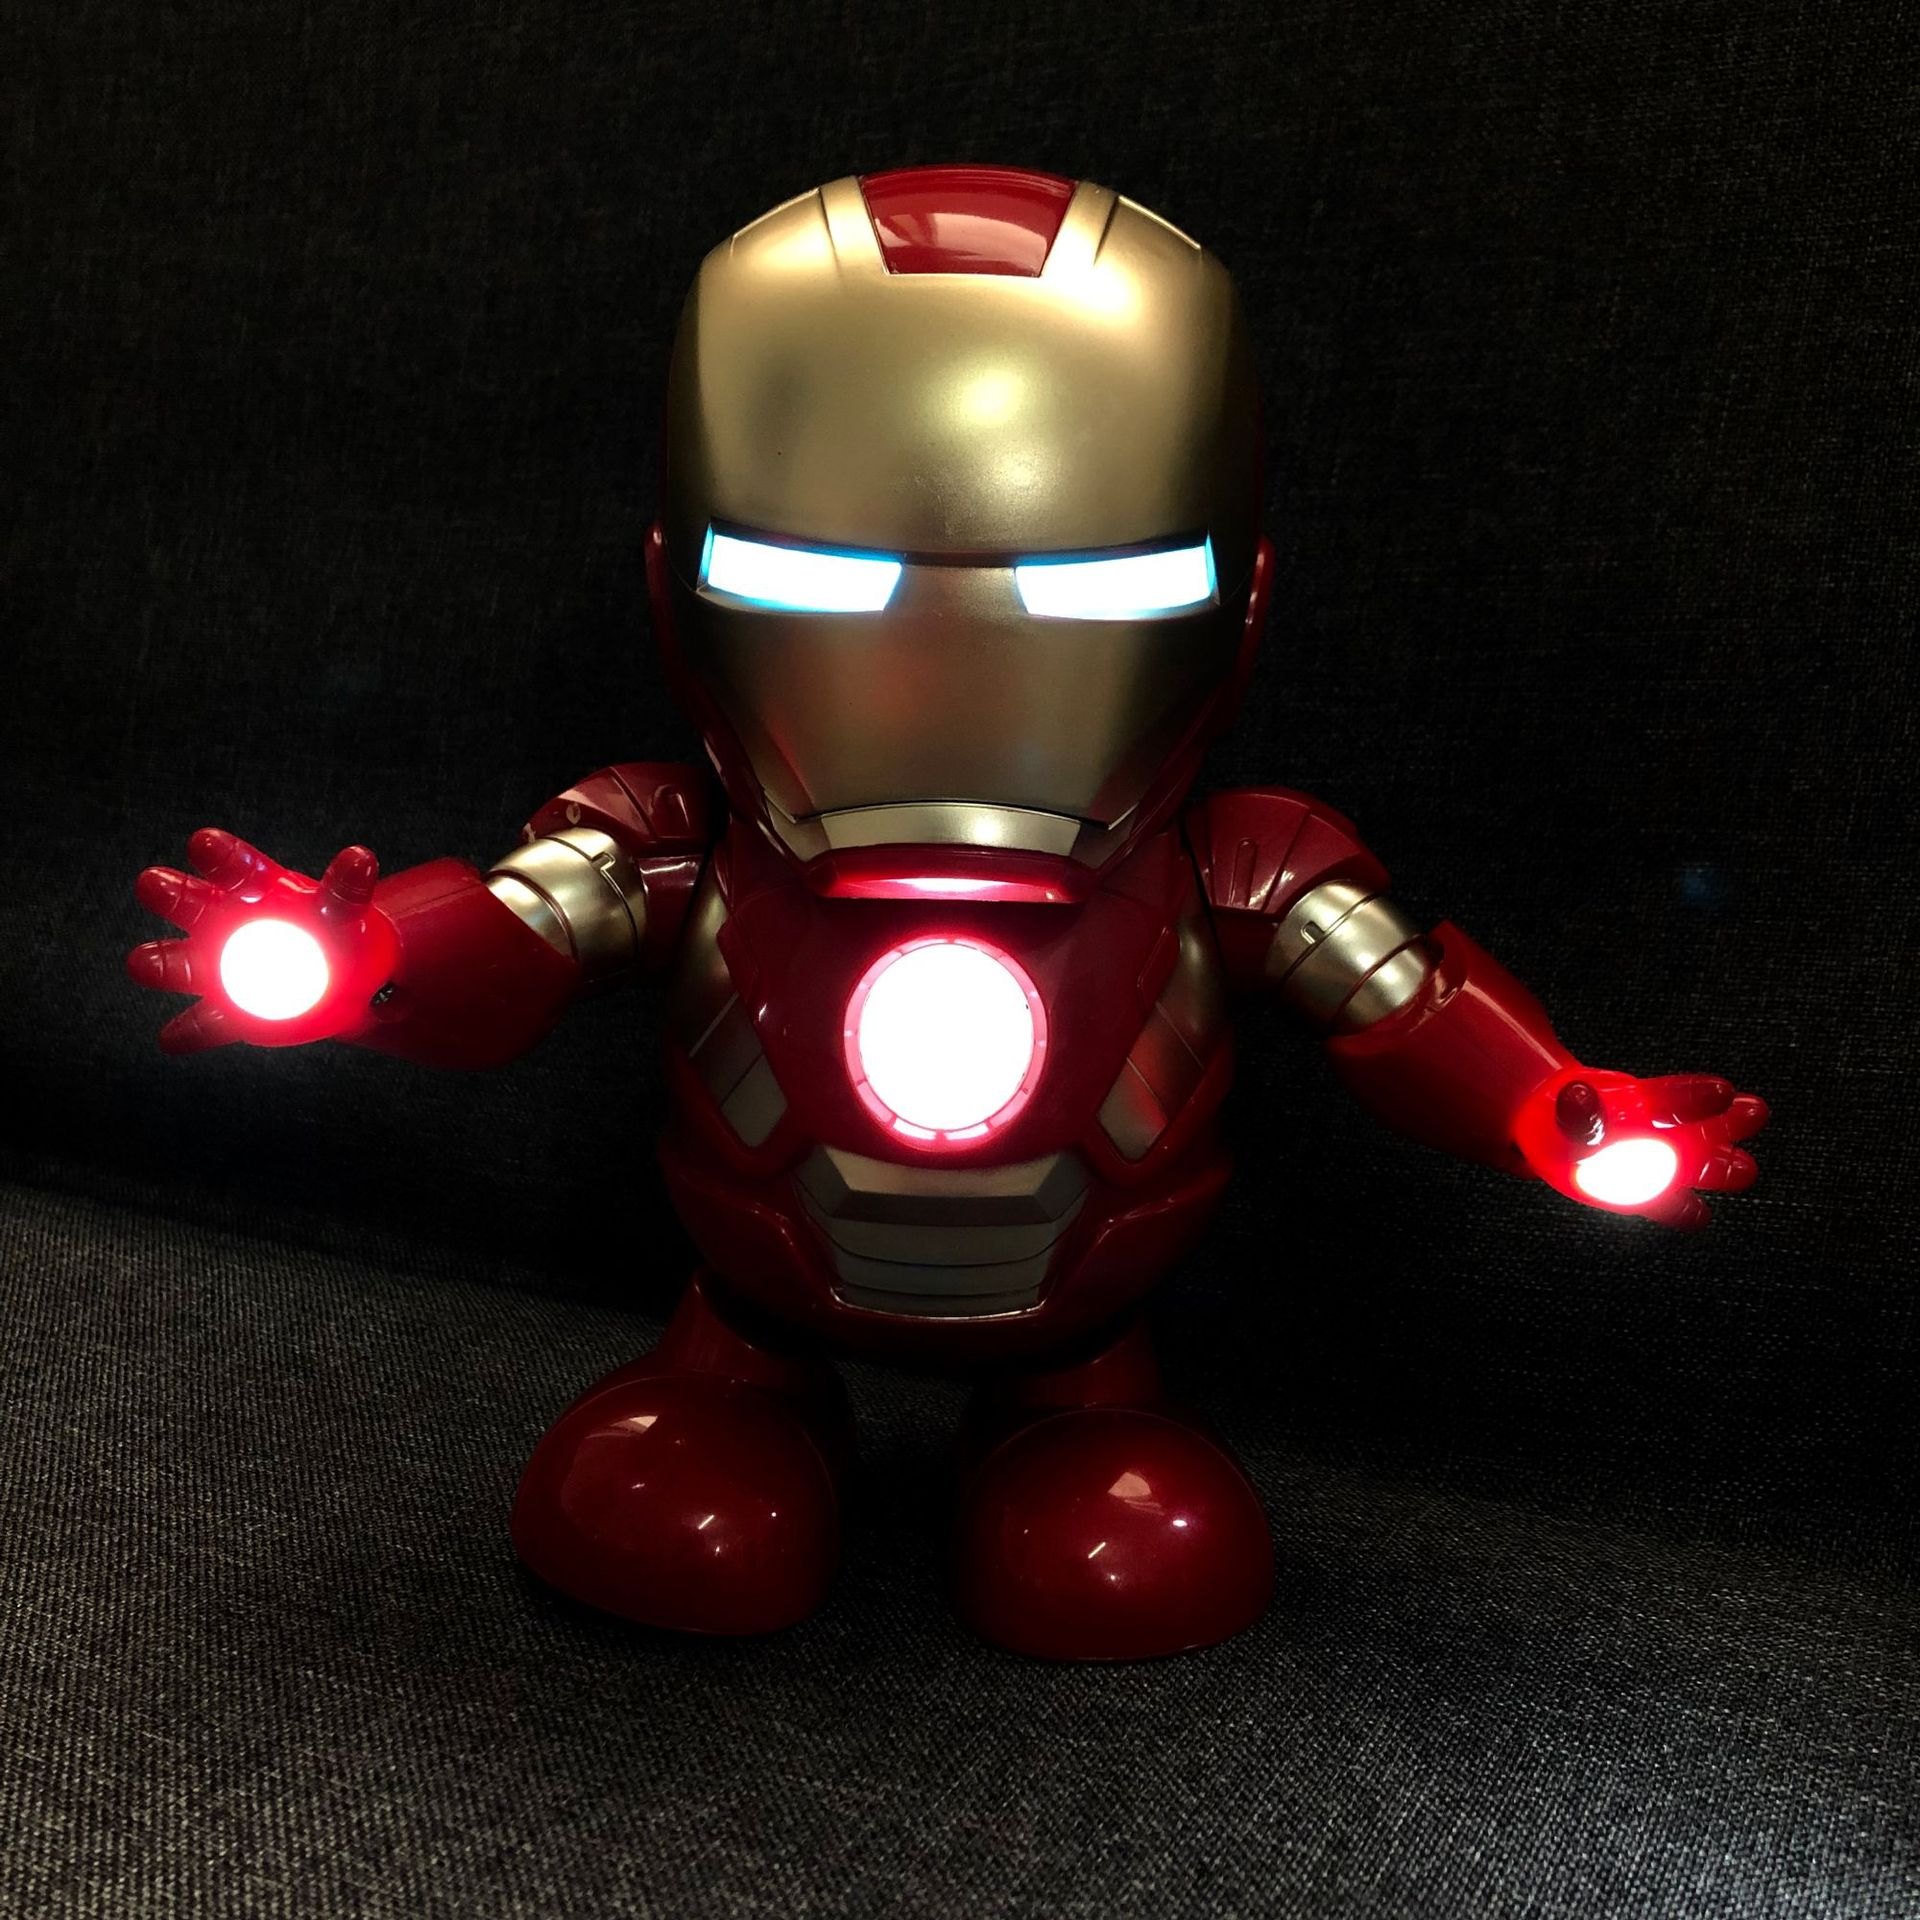 Avenger Hero Union Iron And Steel Cyborg Dancing Robot Light Electric Music Toy Chinese Translation